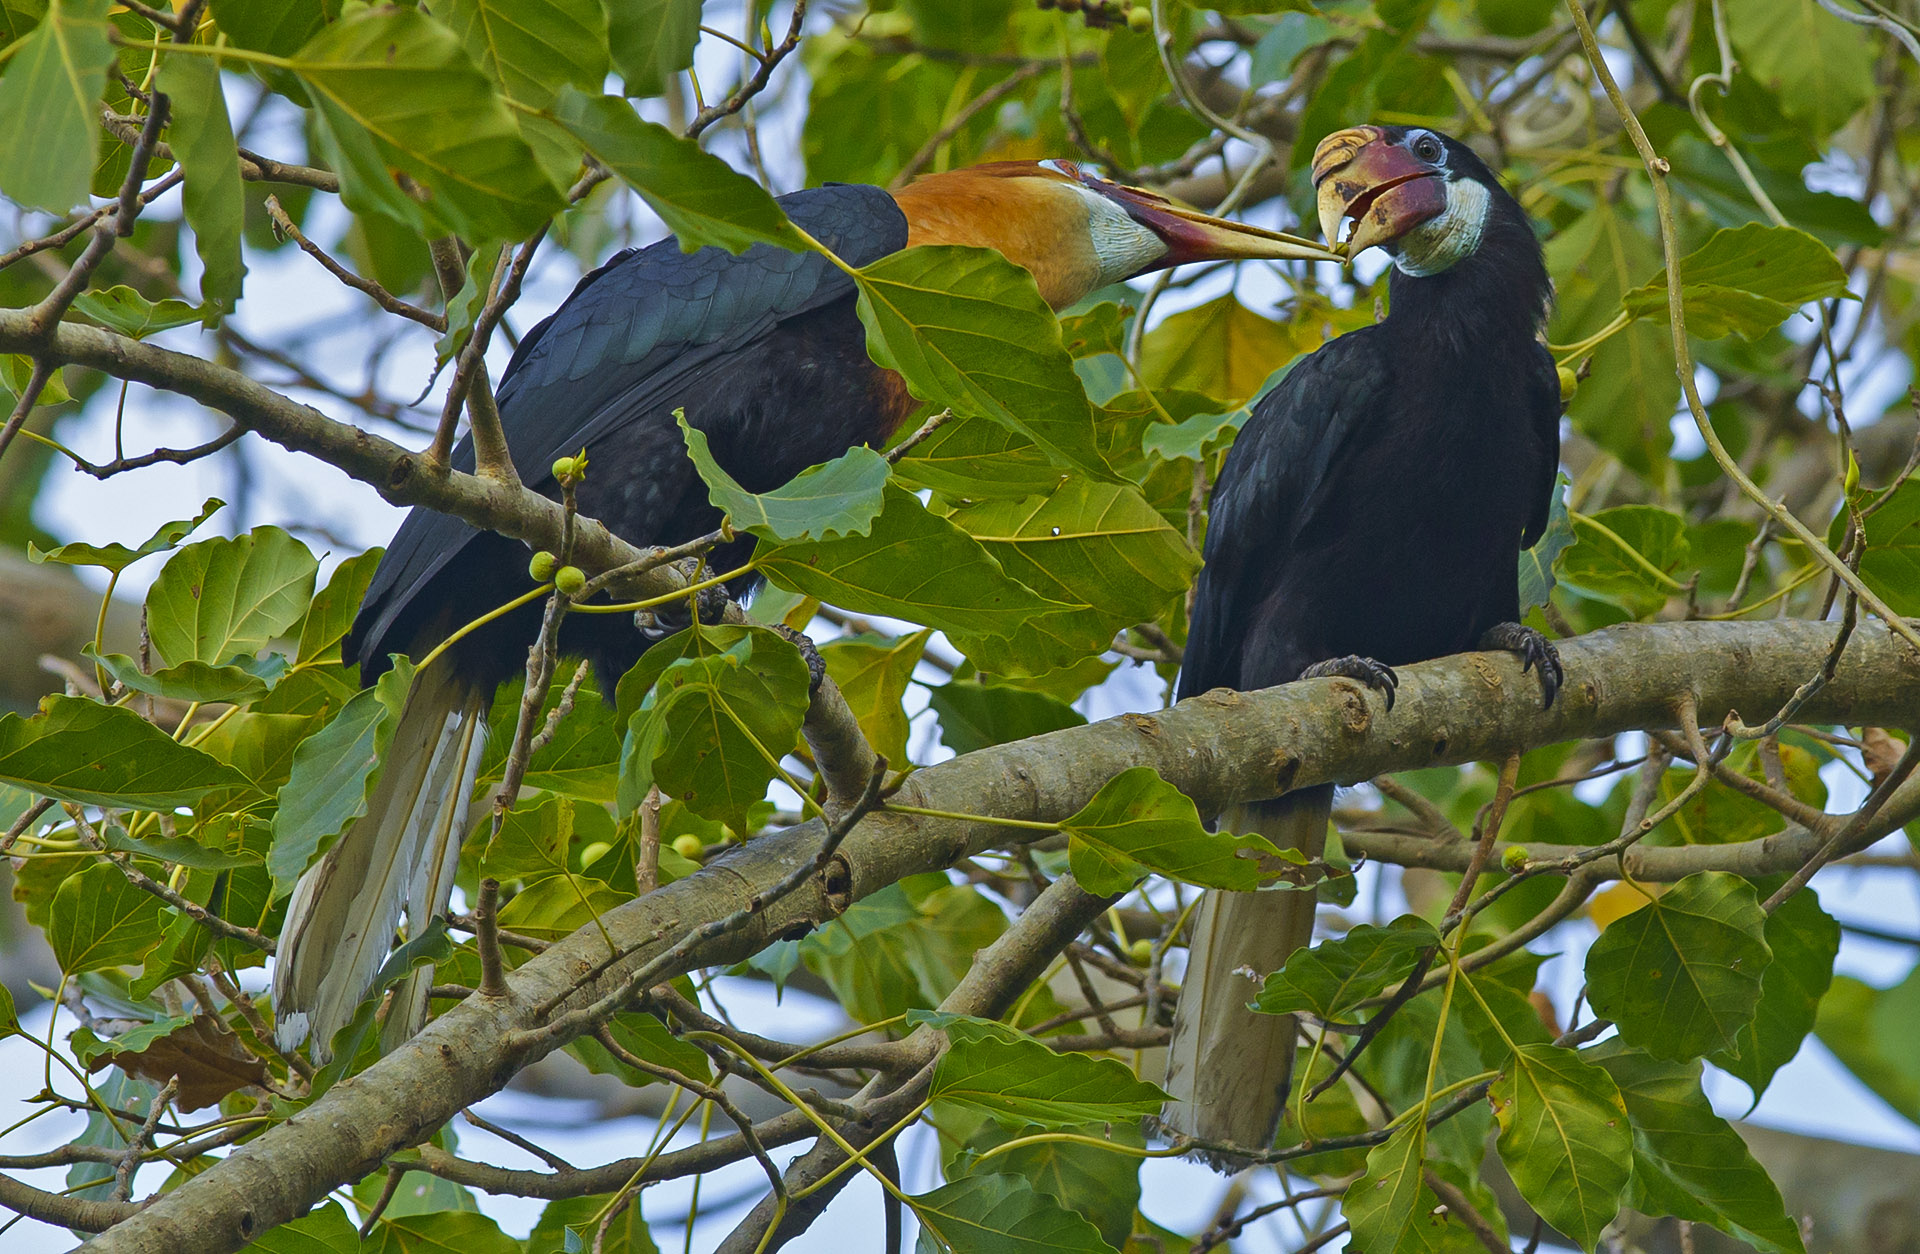 It is estimated that there are 1,000 hornbills on the island. Seen here is a male bird feeding a female as part of their courtship. 